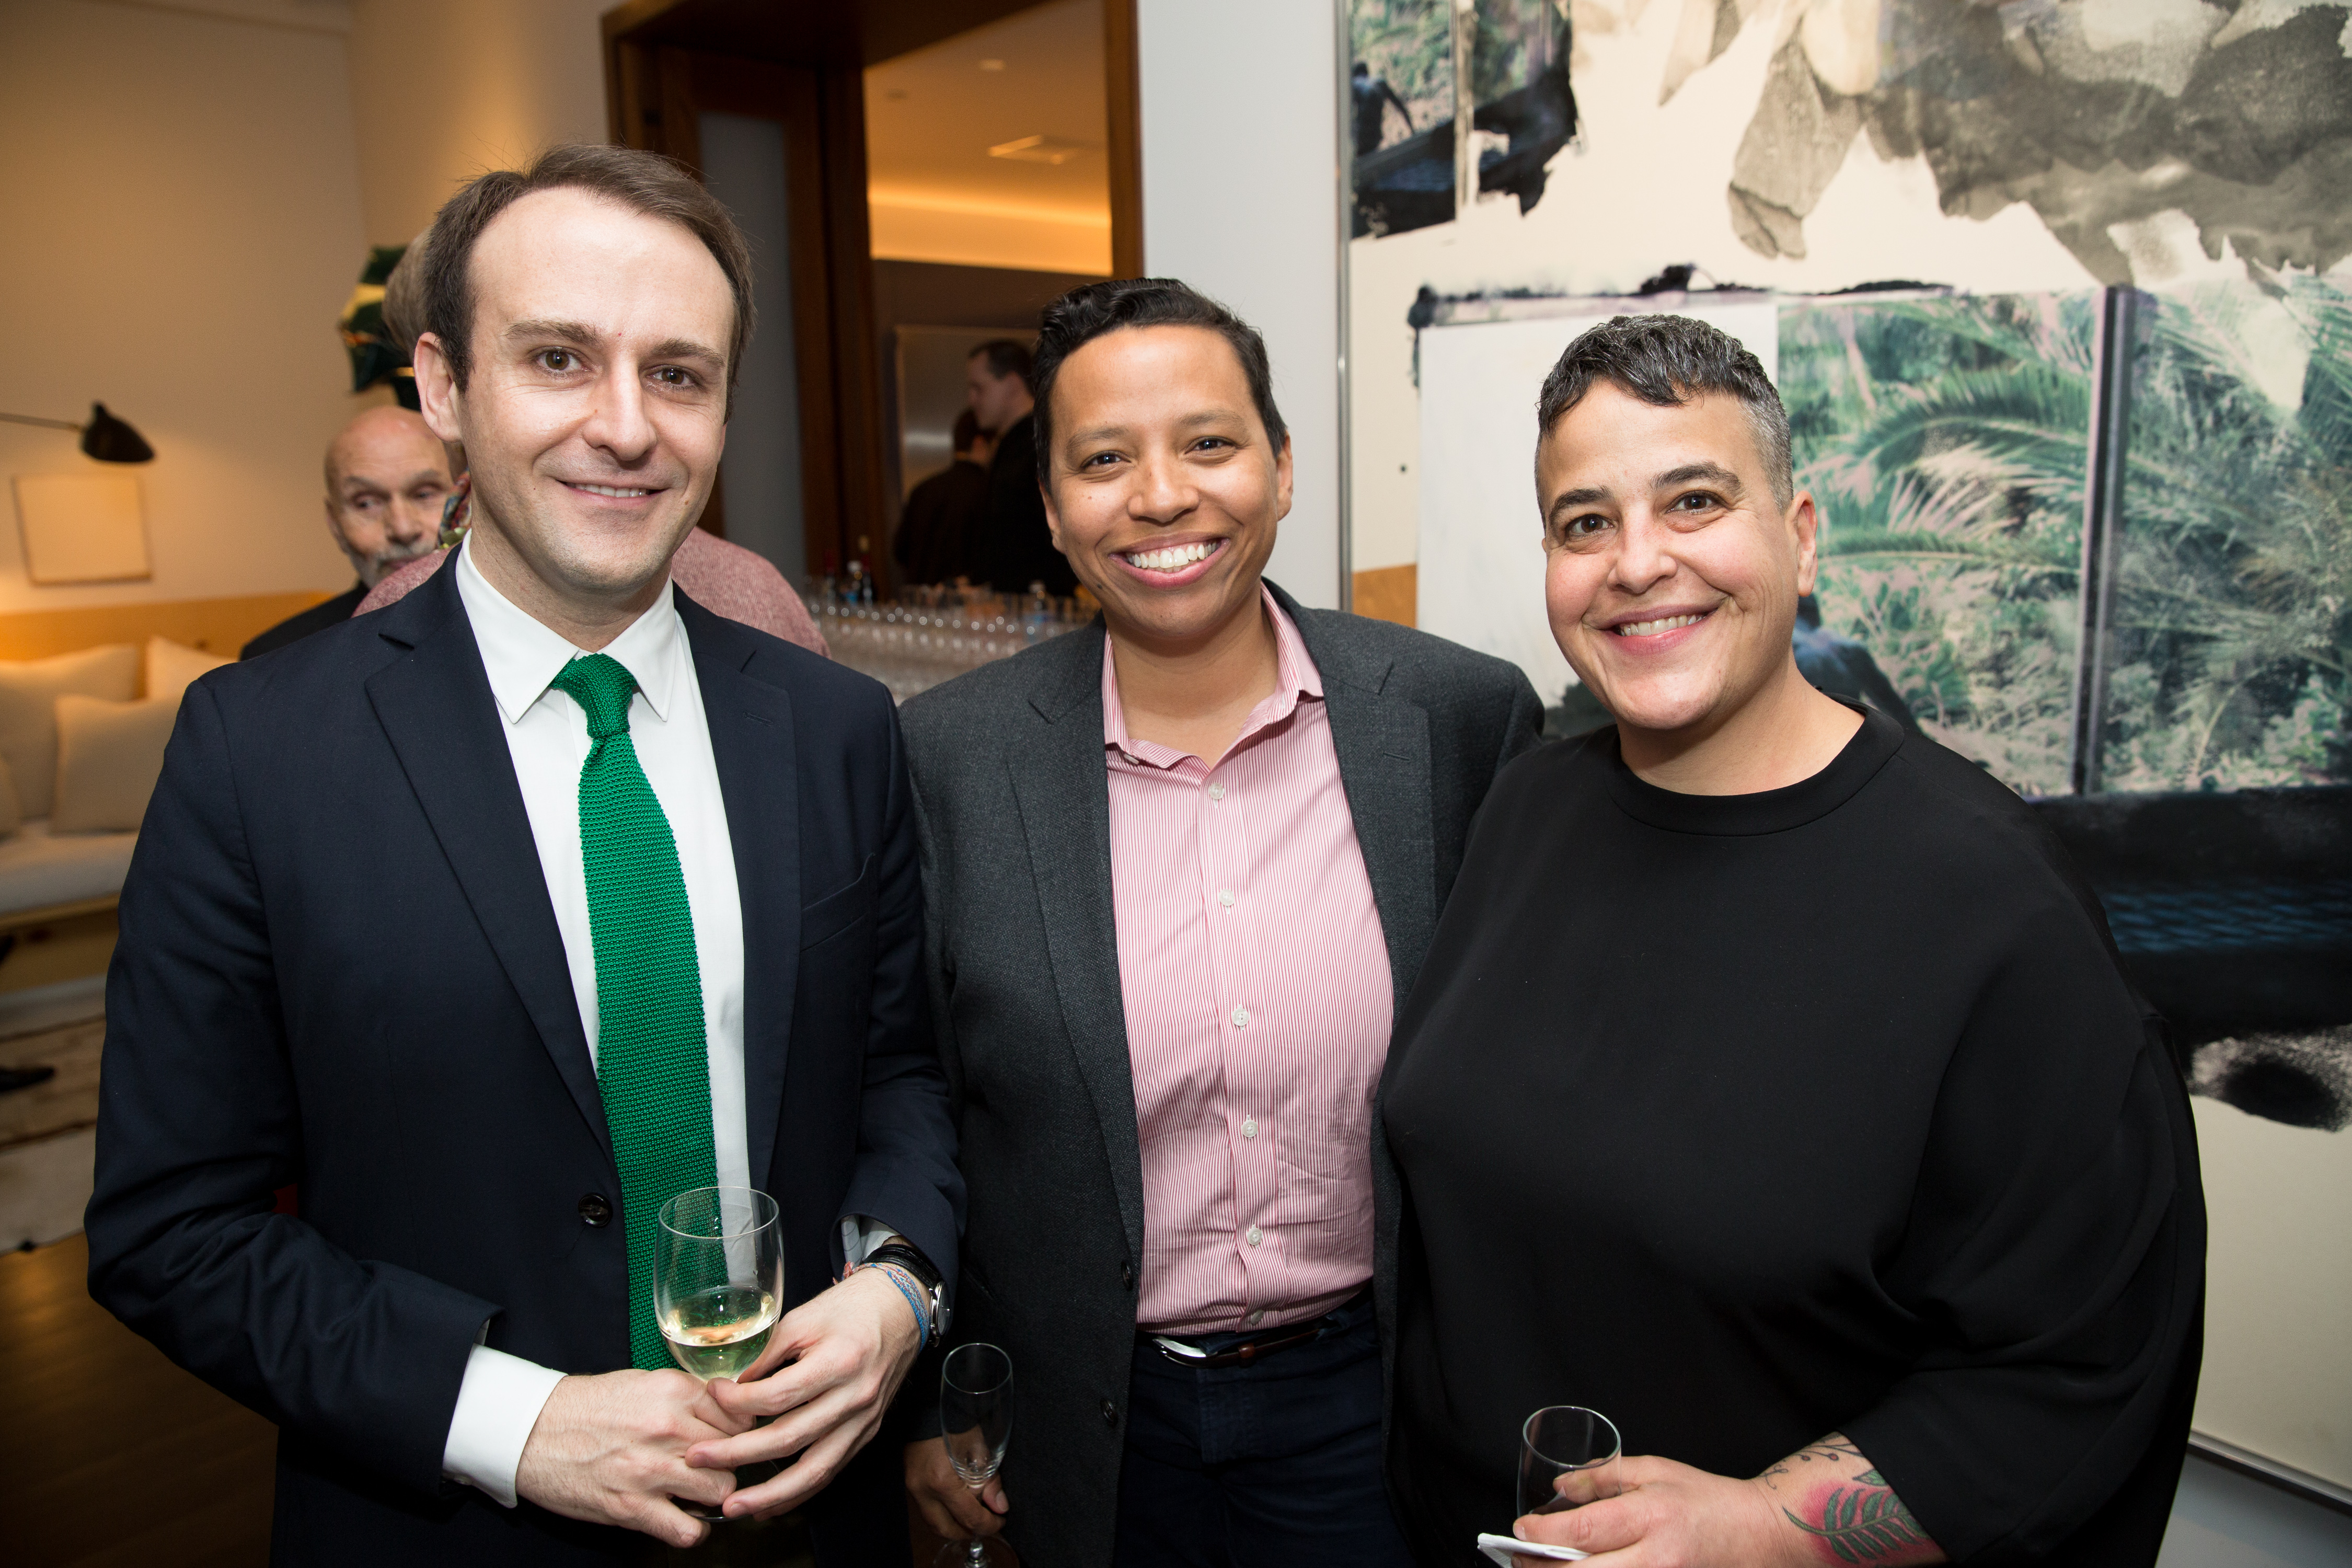 (L to R) Javier Ors Ausín, Lydia Polgreen, and Candace Feit.